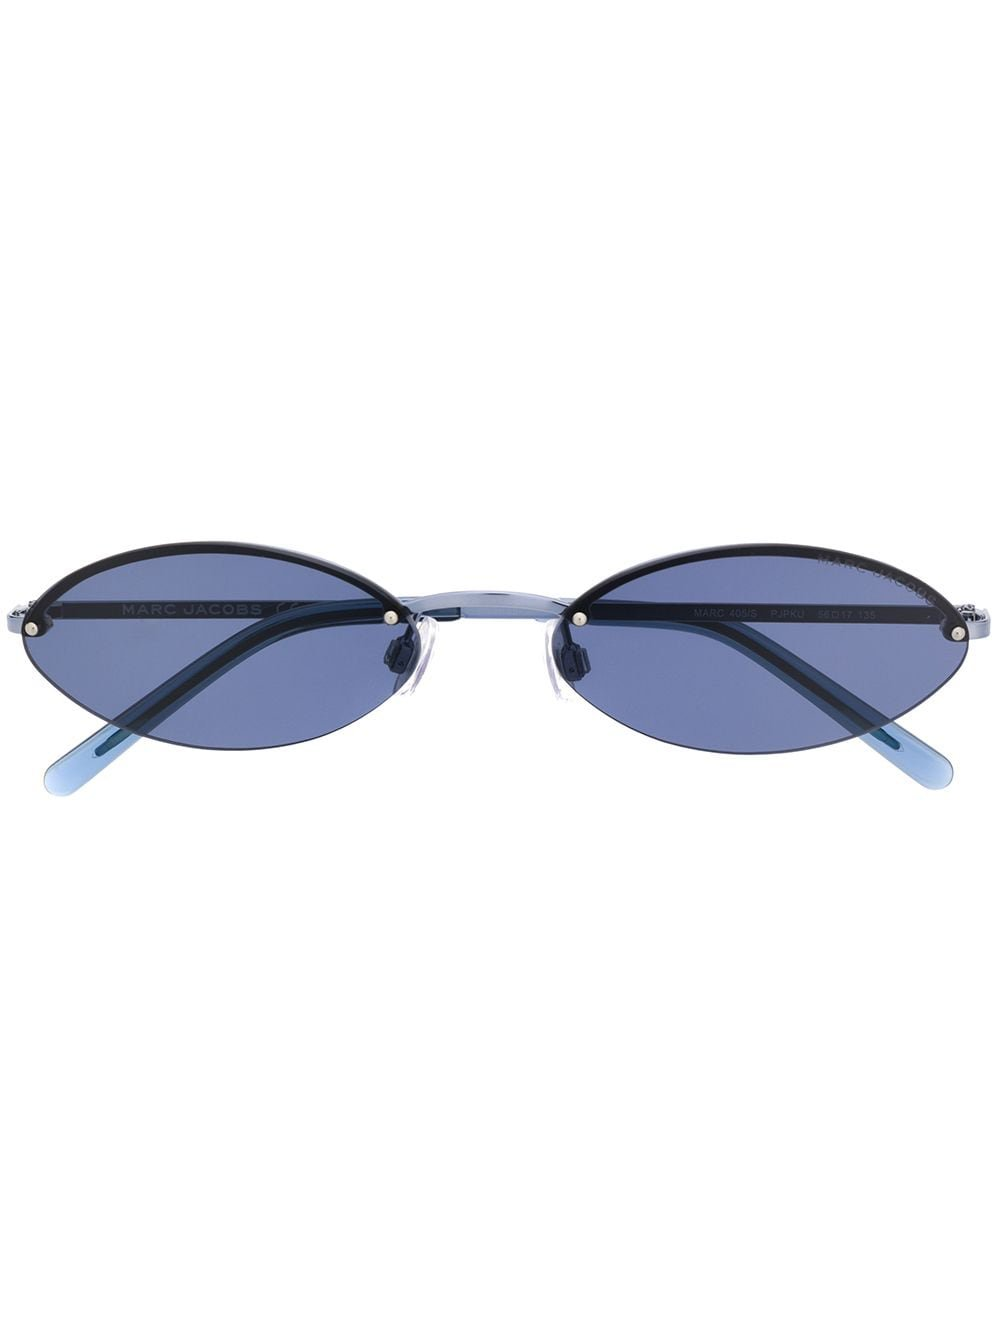 Marc Jacobs Eyewear Oval Frame Sunglasses